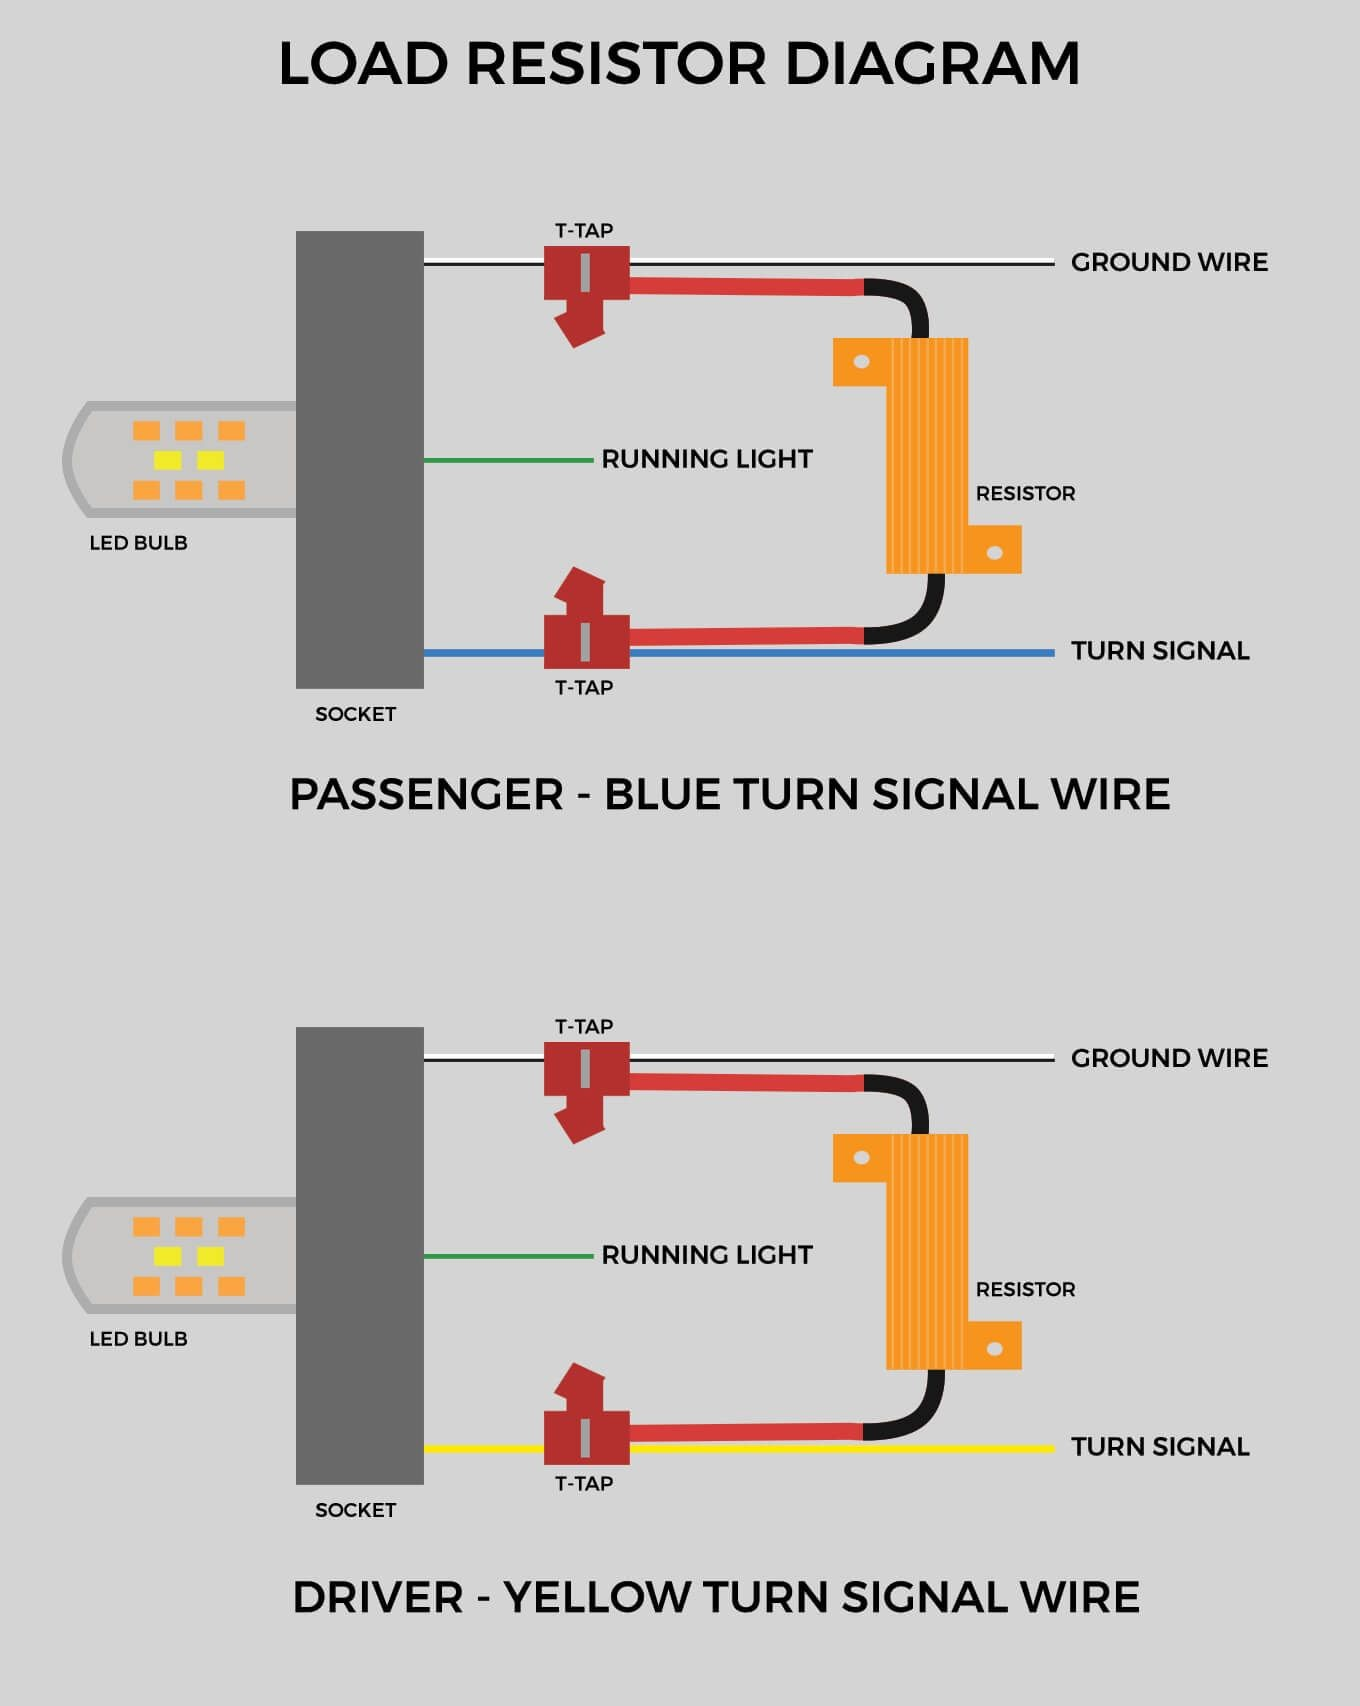 Turn Signal Flasher Wiring Diagram Turn Signal Light Wiring Diagram Wiring Diagram Paper Of Turn Signal Flasher Wiring Diagram